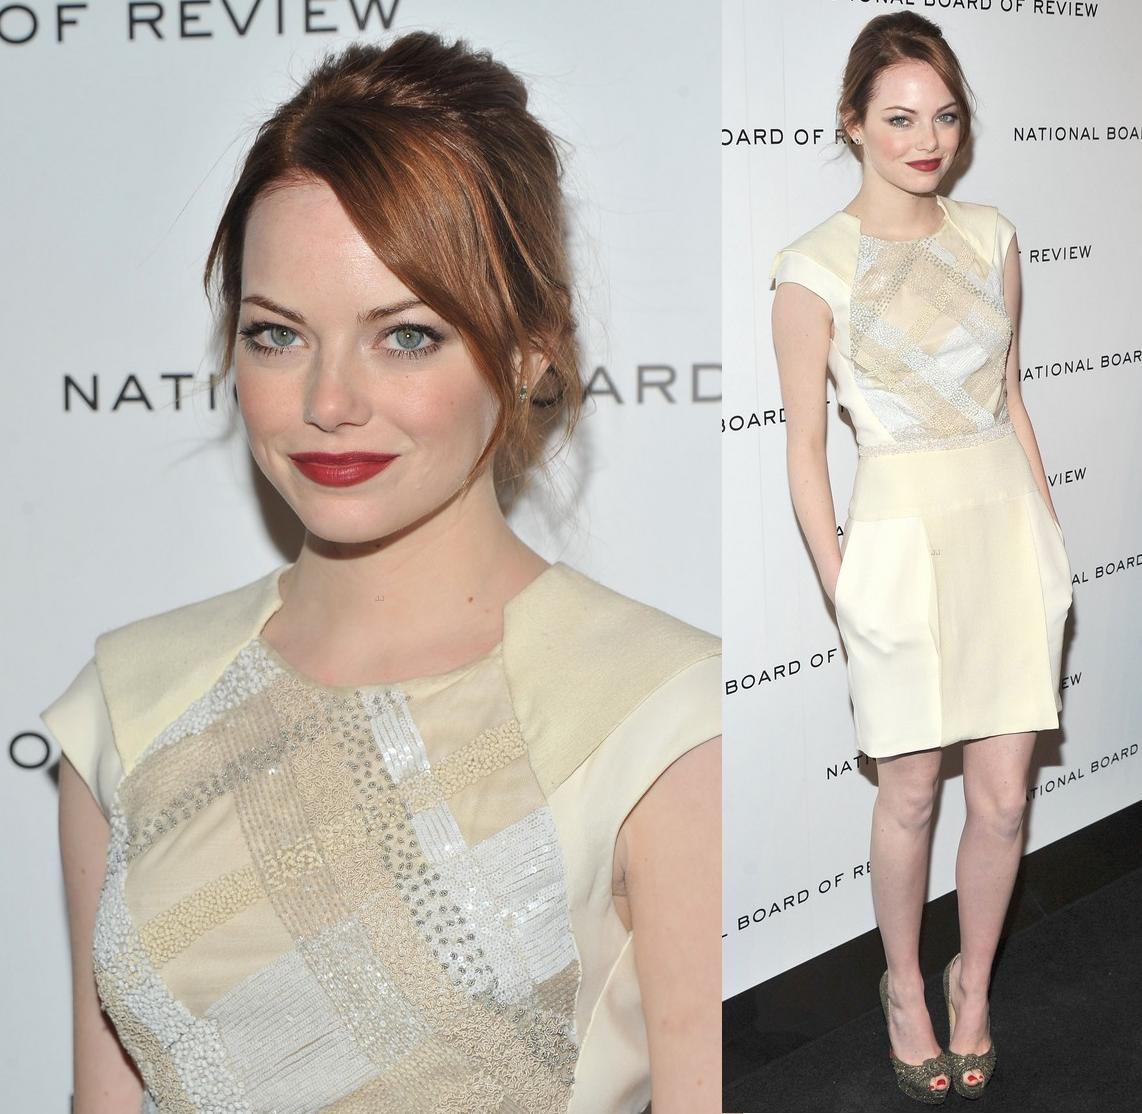 http://2.bp.blogspot.com/-uSgvuuzzqtg/Tw4AIp7cENI/AAAAAAAAEA4/isX5ba3gHt8/s1600/Emma+Stone+In+J.+Mendel+Pre+Fall+2012+-+2012+National+Board+of+Review+Awards+Gala.jpg